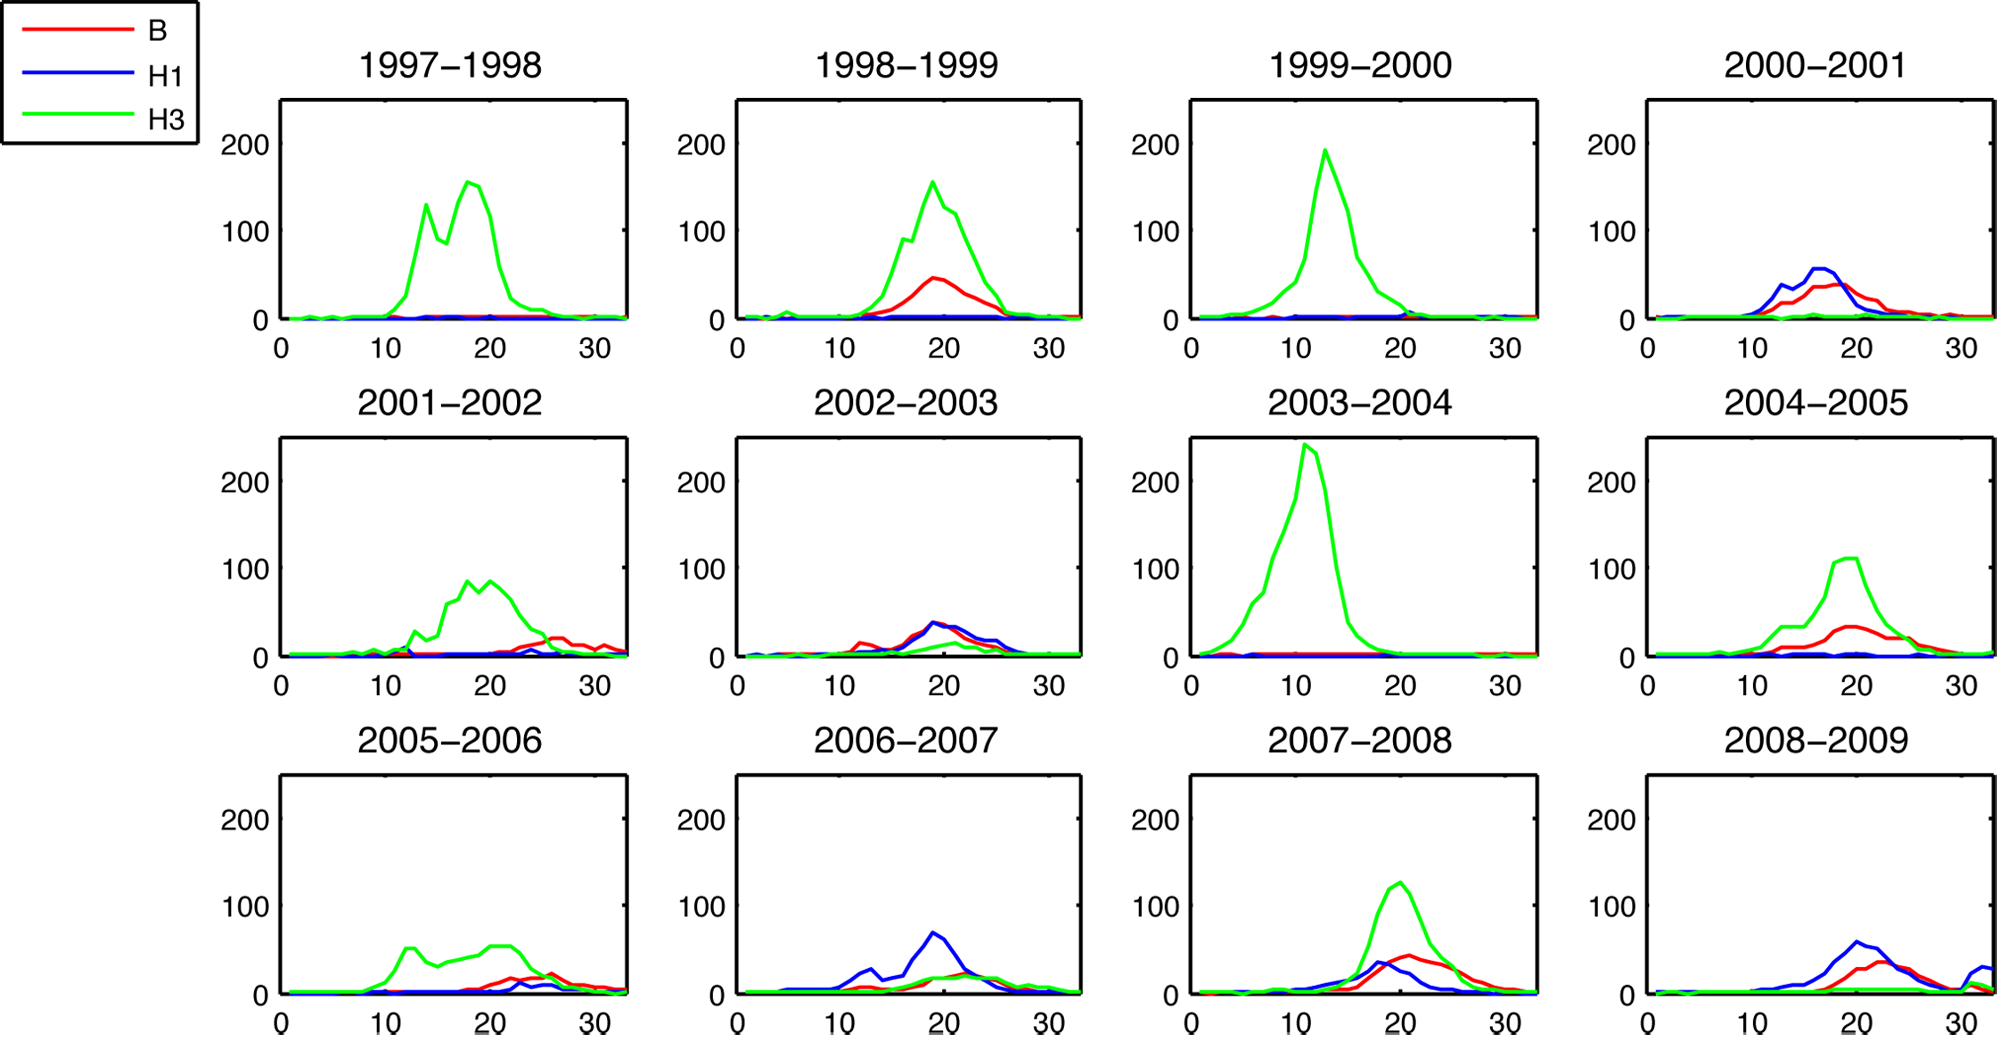 """Weekly incidence proxies of A/H3N2 (green), A/H1N1 (blue), and influenza B (red) strains inferred from <em class=""""ref"""">[<b>6</b>]</em>."""